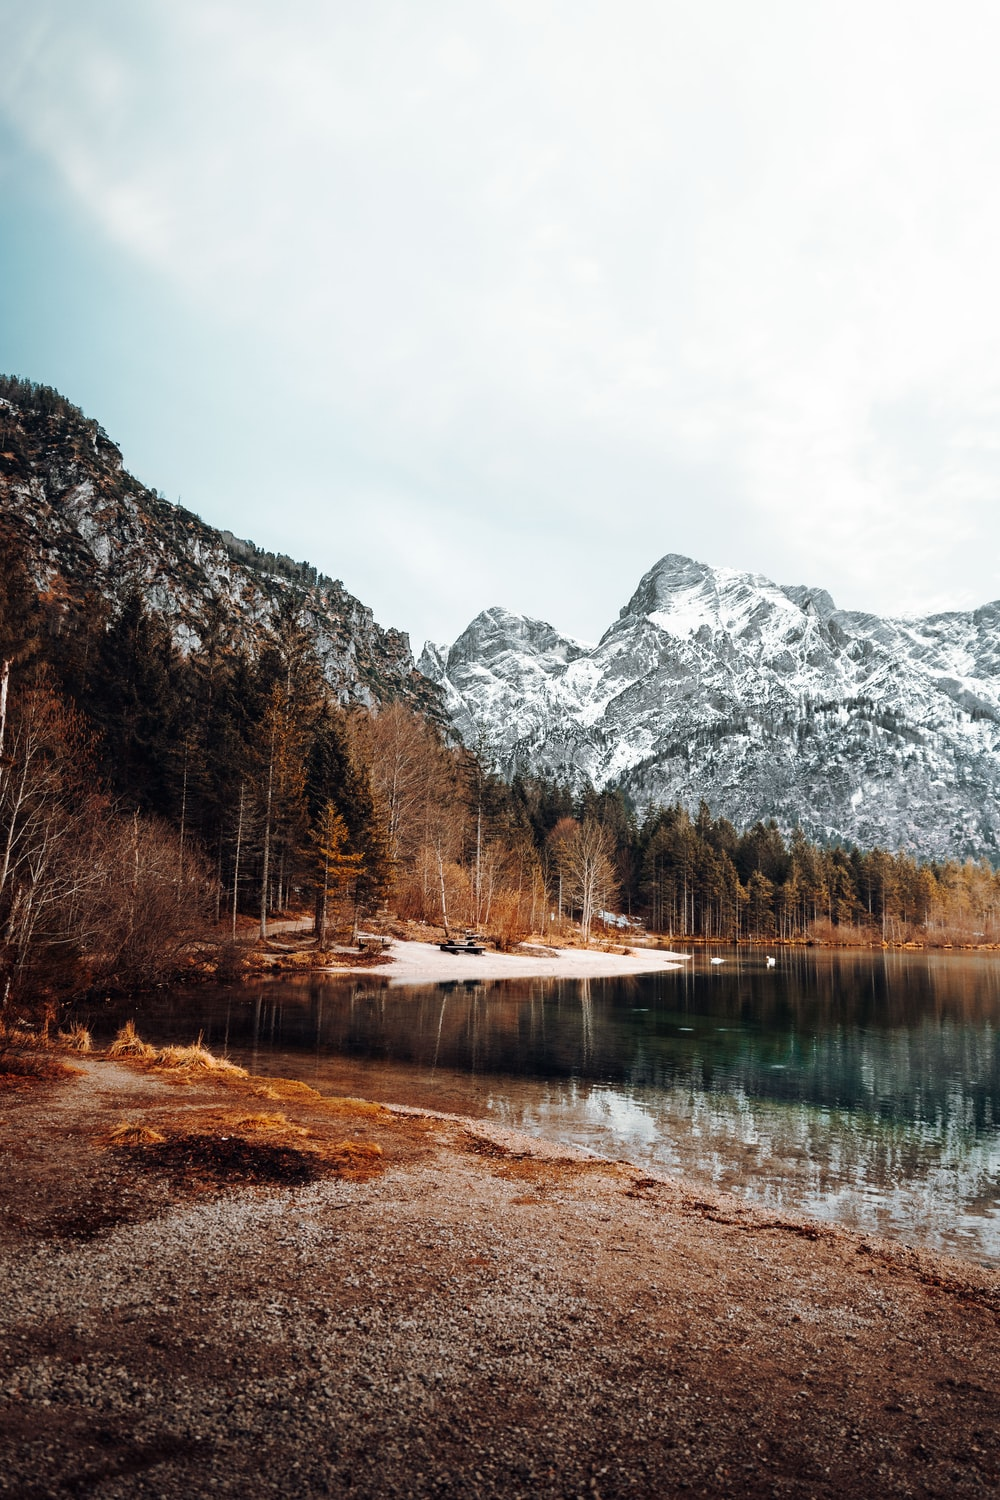 lake surrounded by trees and mountains during daytime